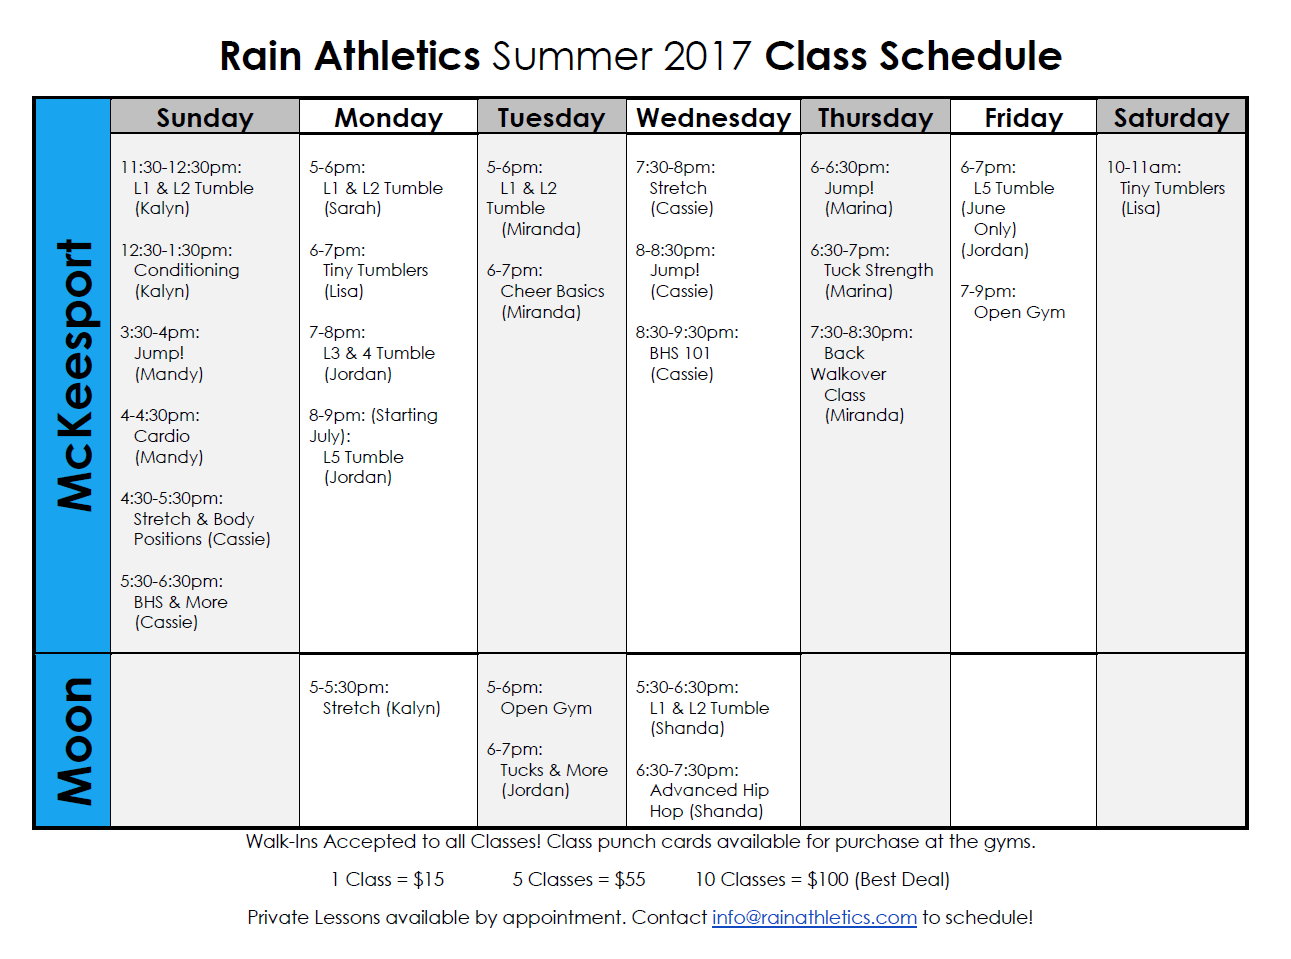 Rain Athletics Summer Class Schedule